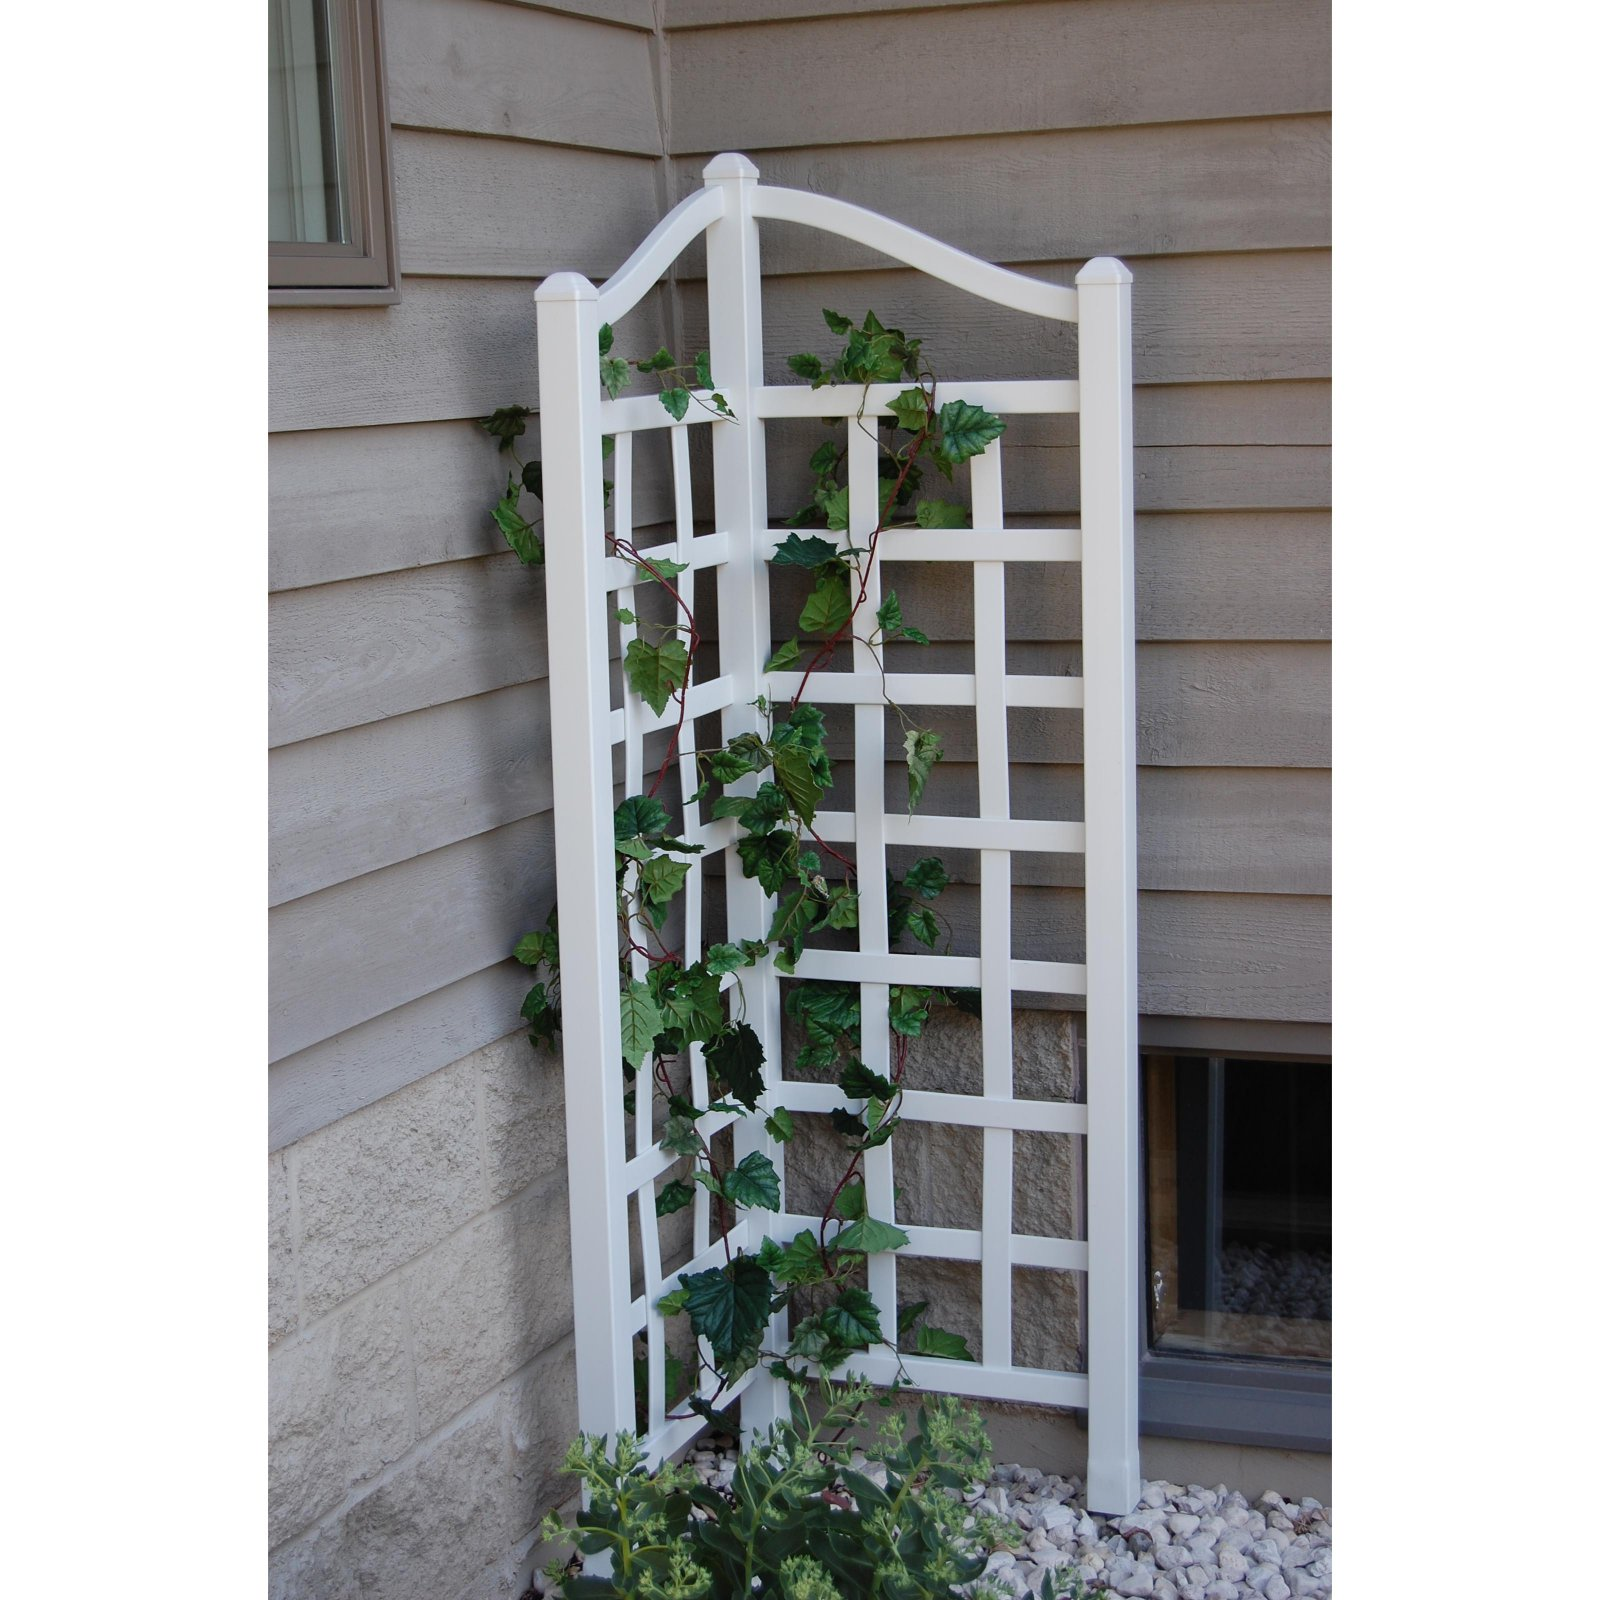 Dura-Trel Oxford 5.5-ft. Vinyl Corner Trellis by Dura-Trel Inc